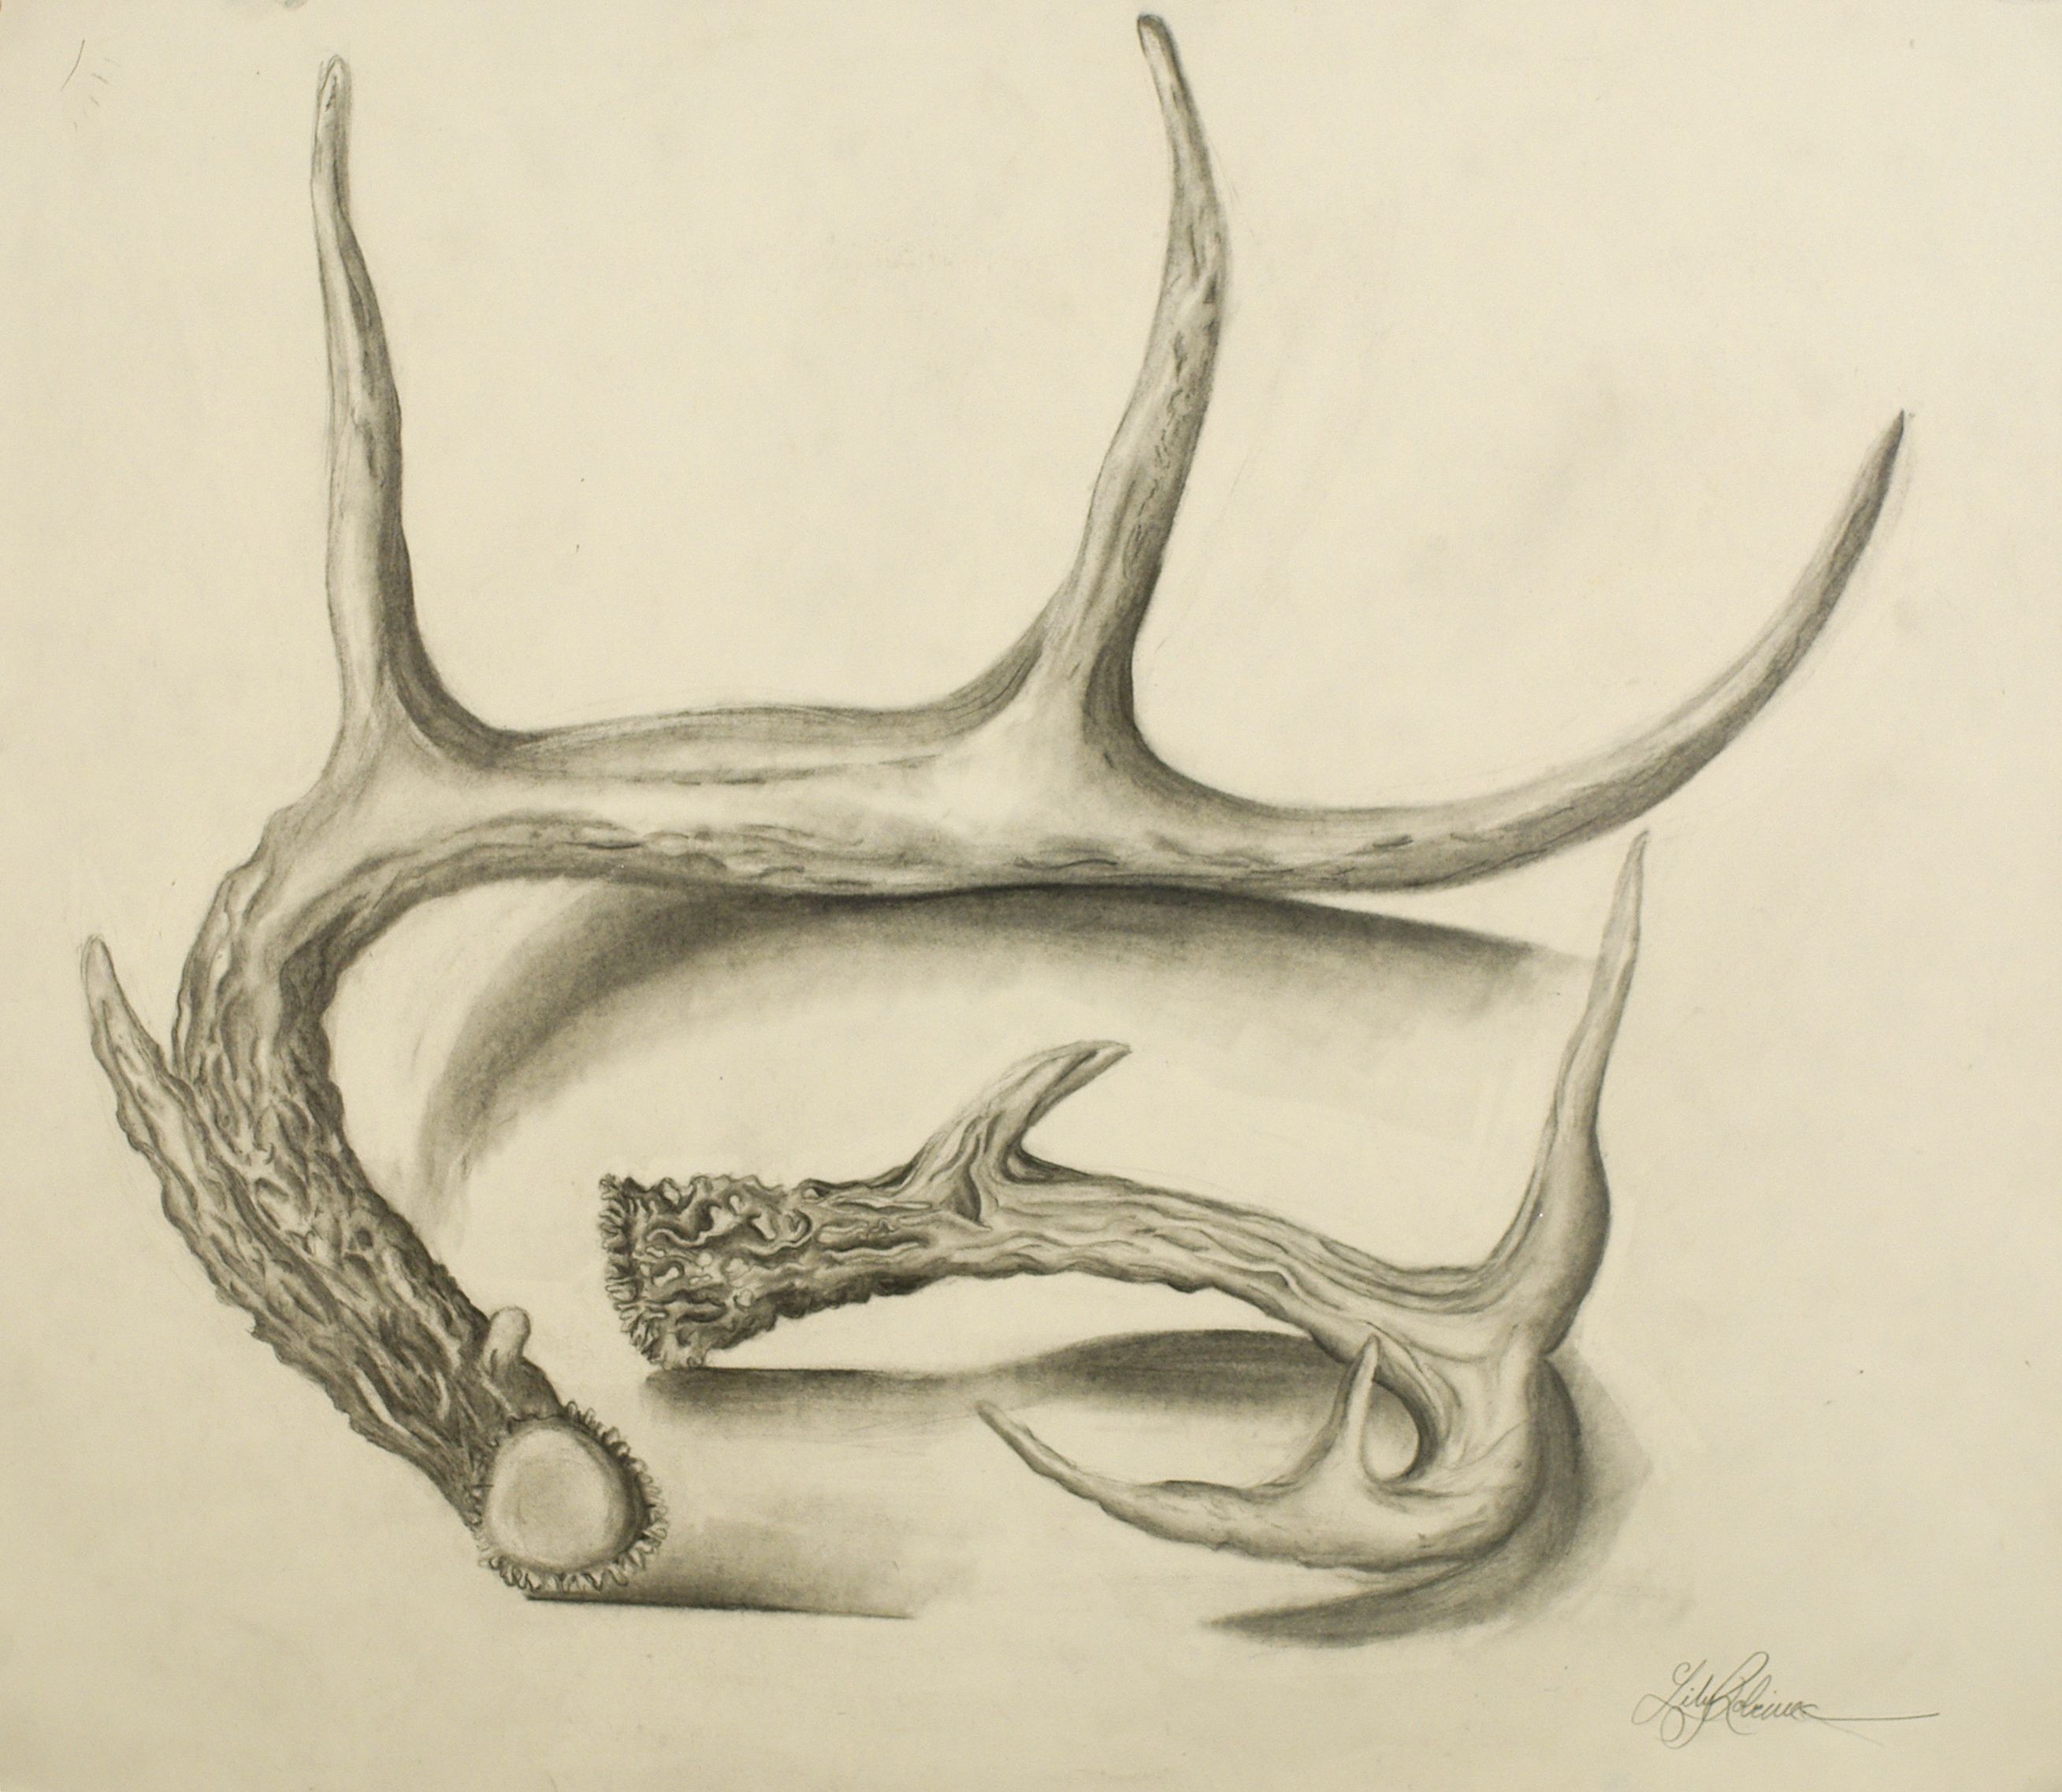 deer antlers drawing easy - photo #2